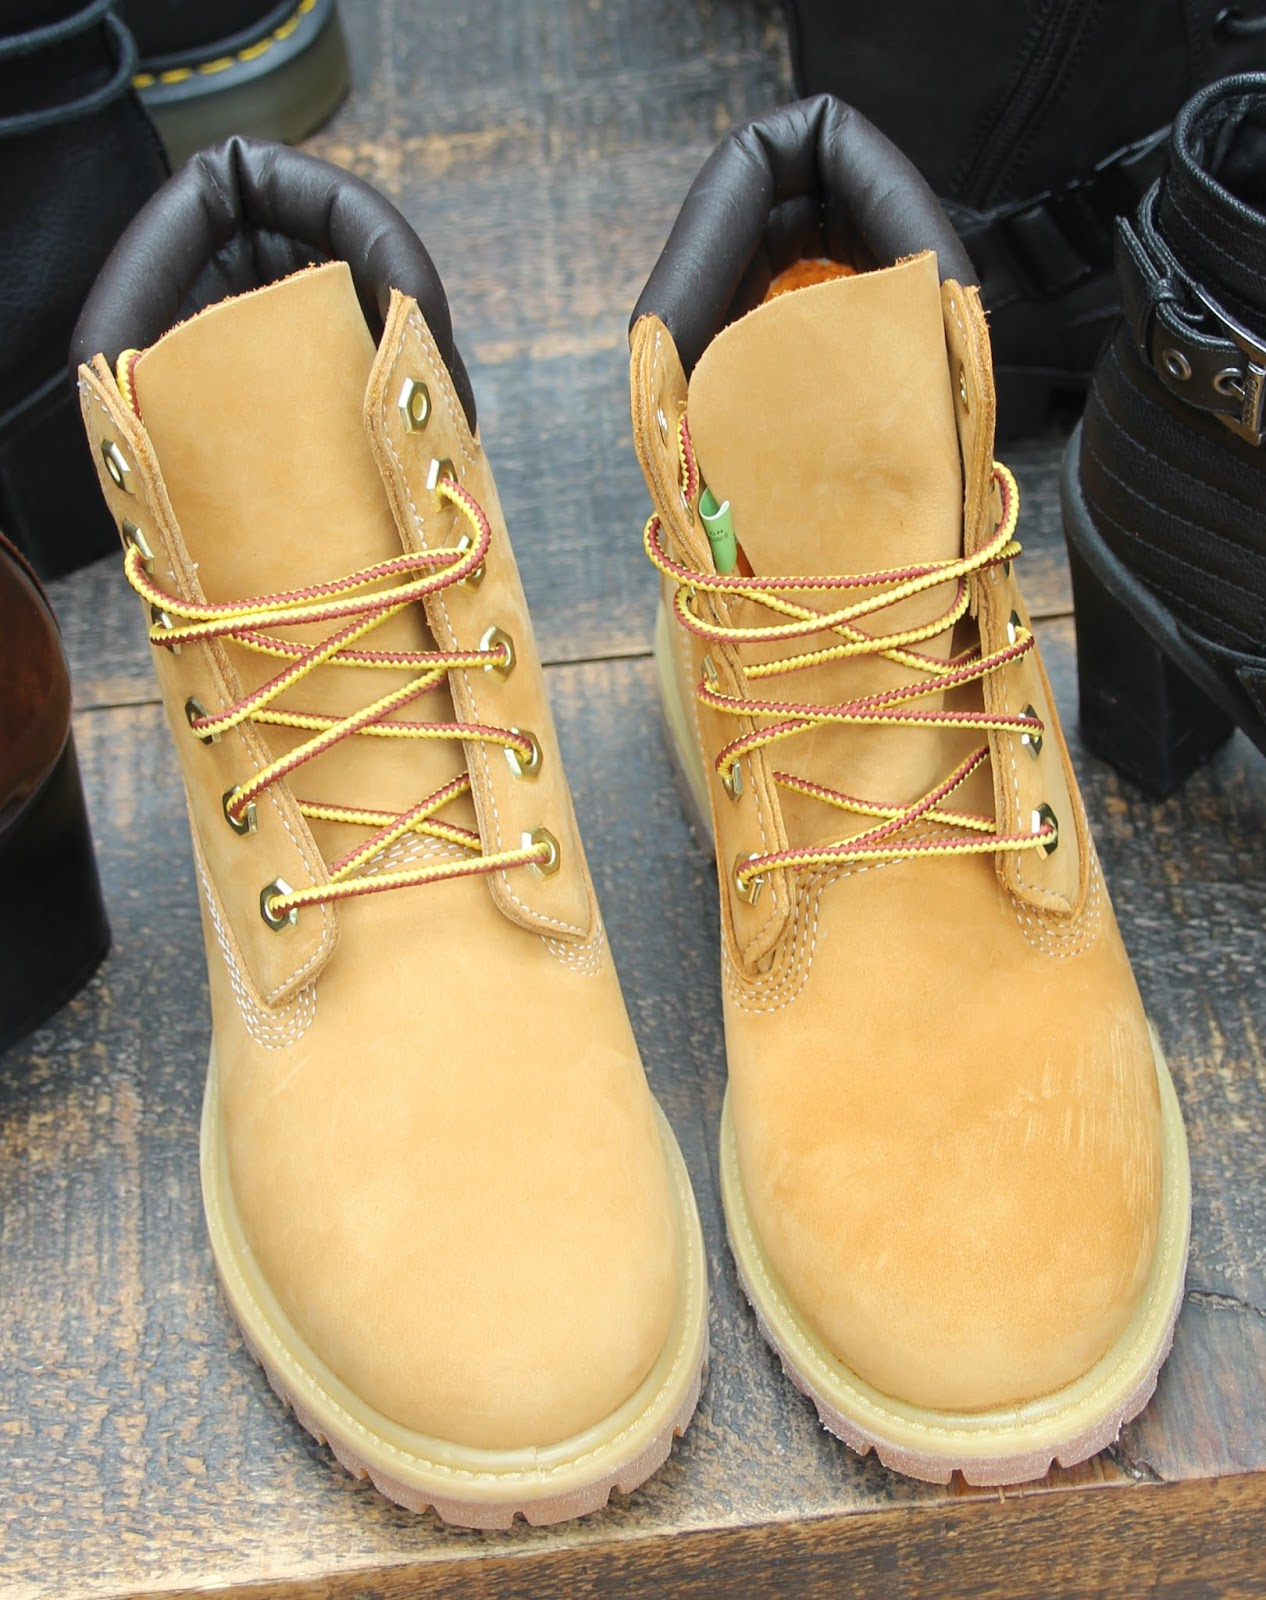 84c2f61ce0f Timberland Waterville  129.95 DSW price- work boots for urbanites